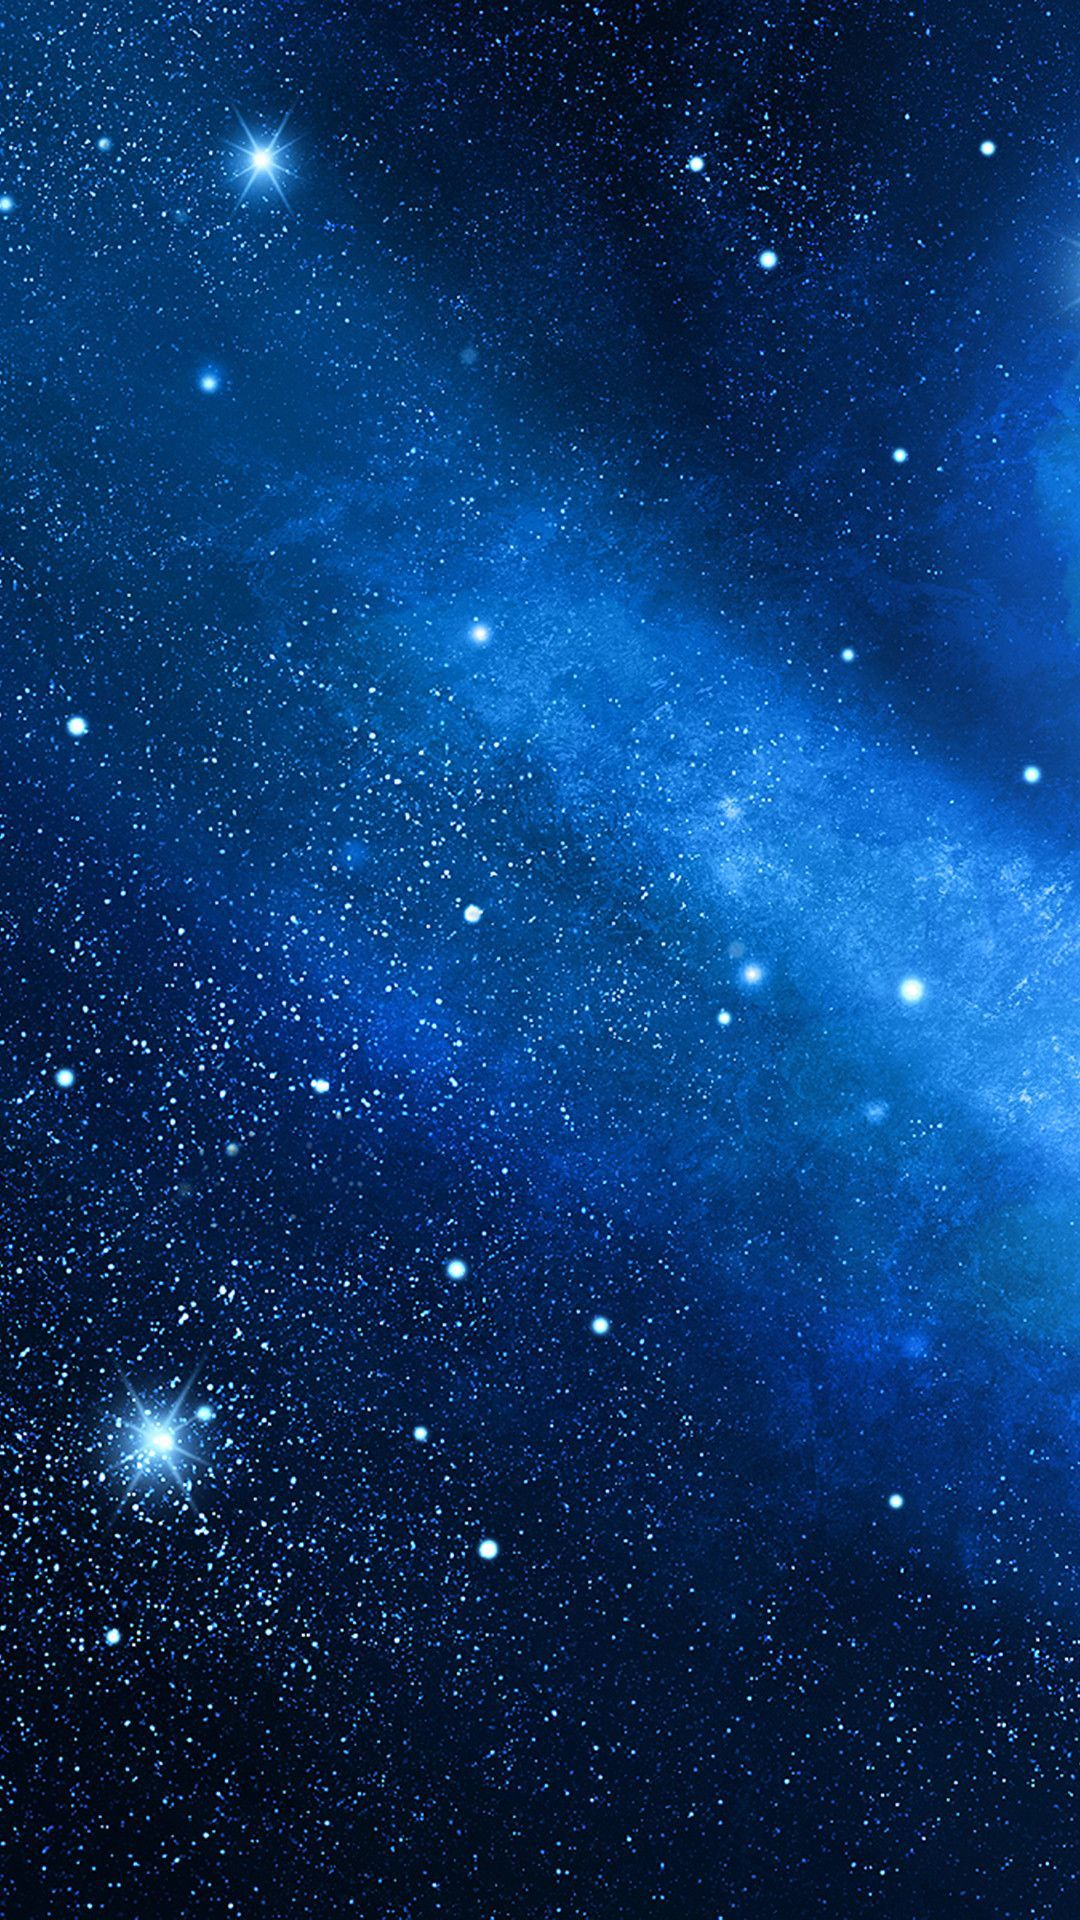 Blue Galaxy Background : galaxy, background, Galaxy, IPhone, Wallpapers, Backgrounds, WallpaperAccess